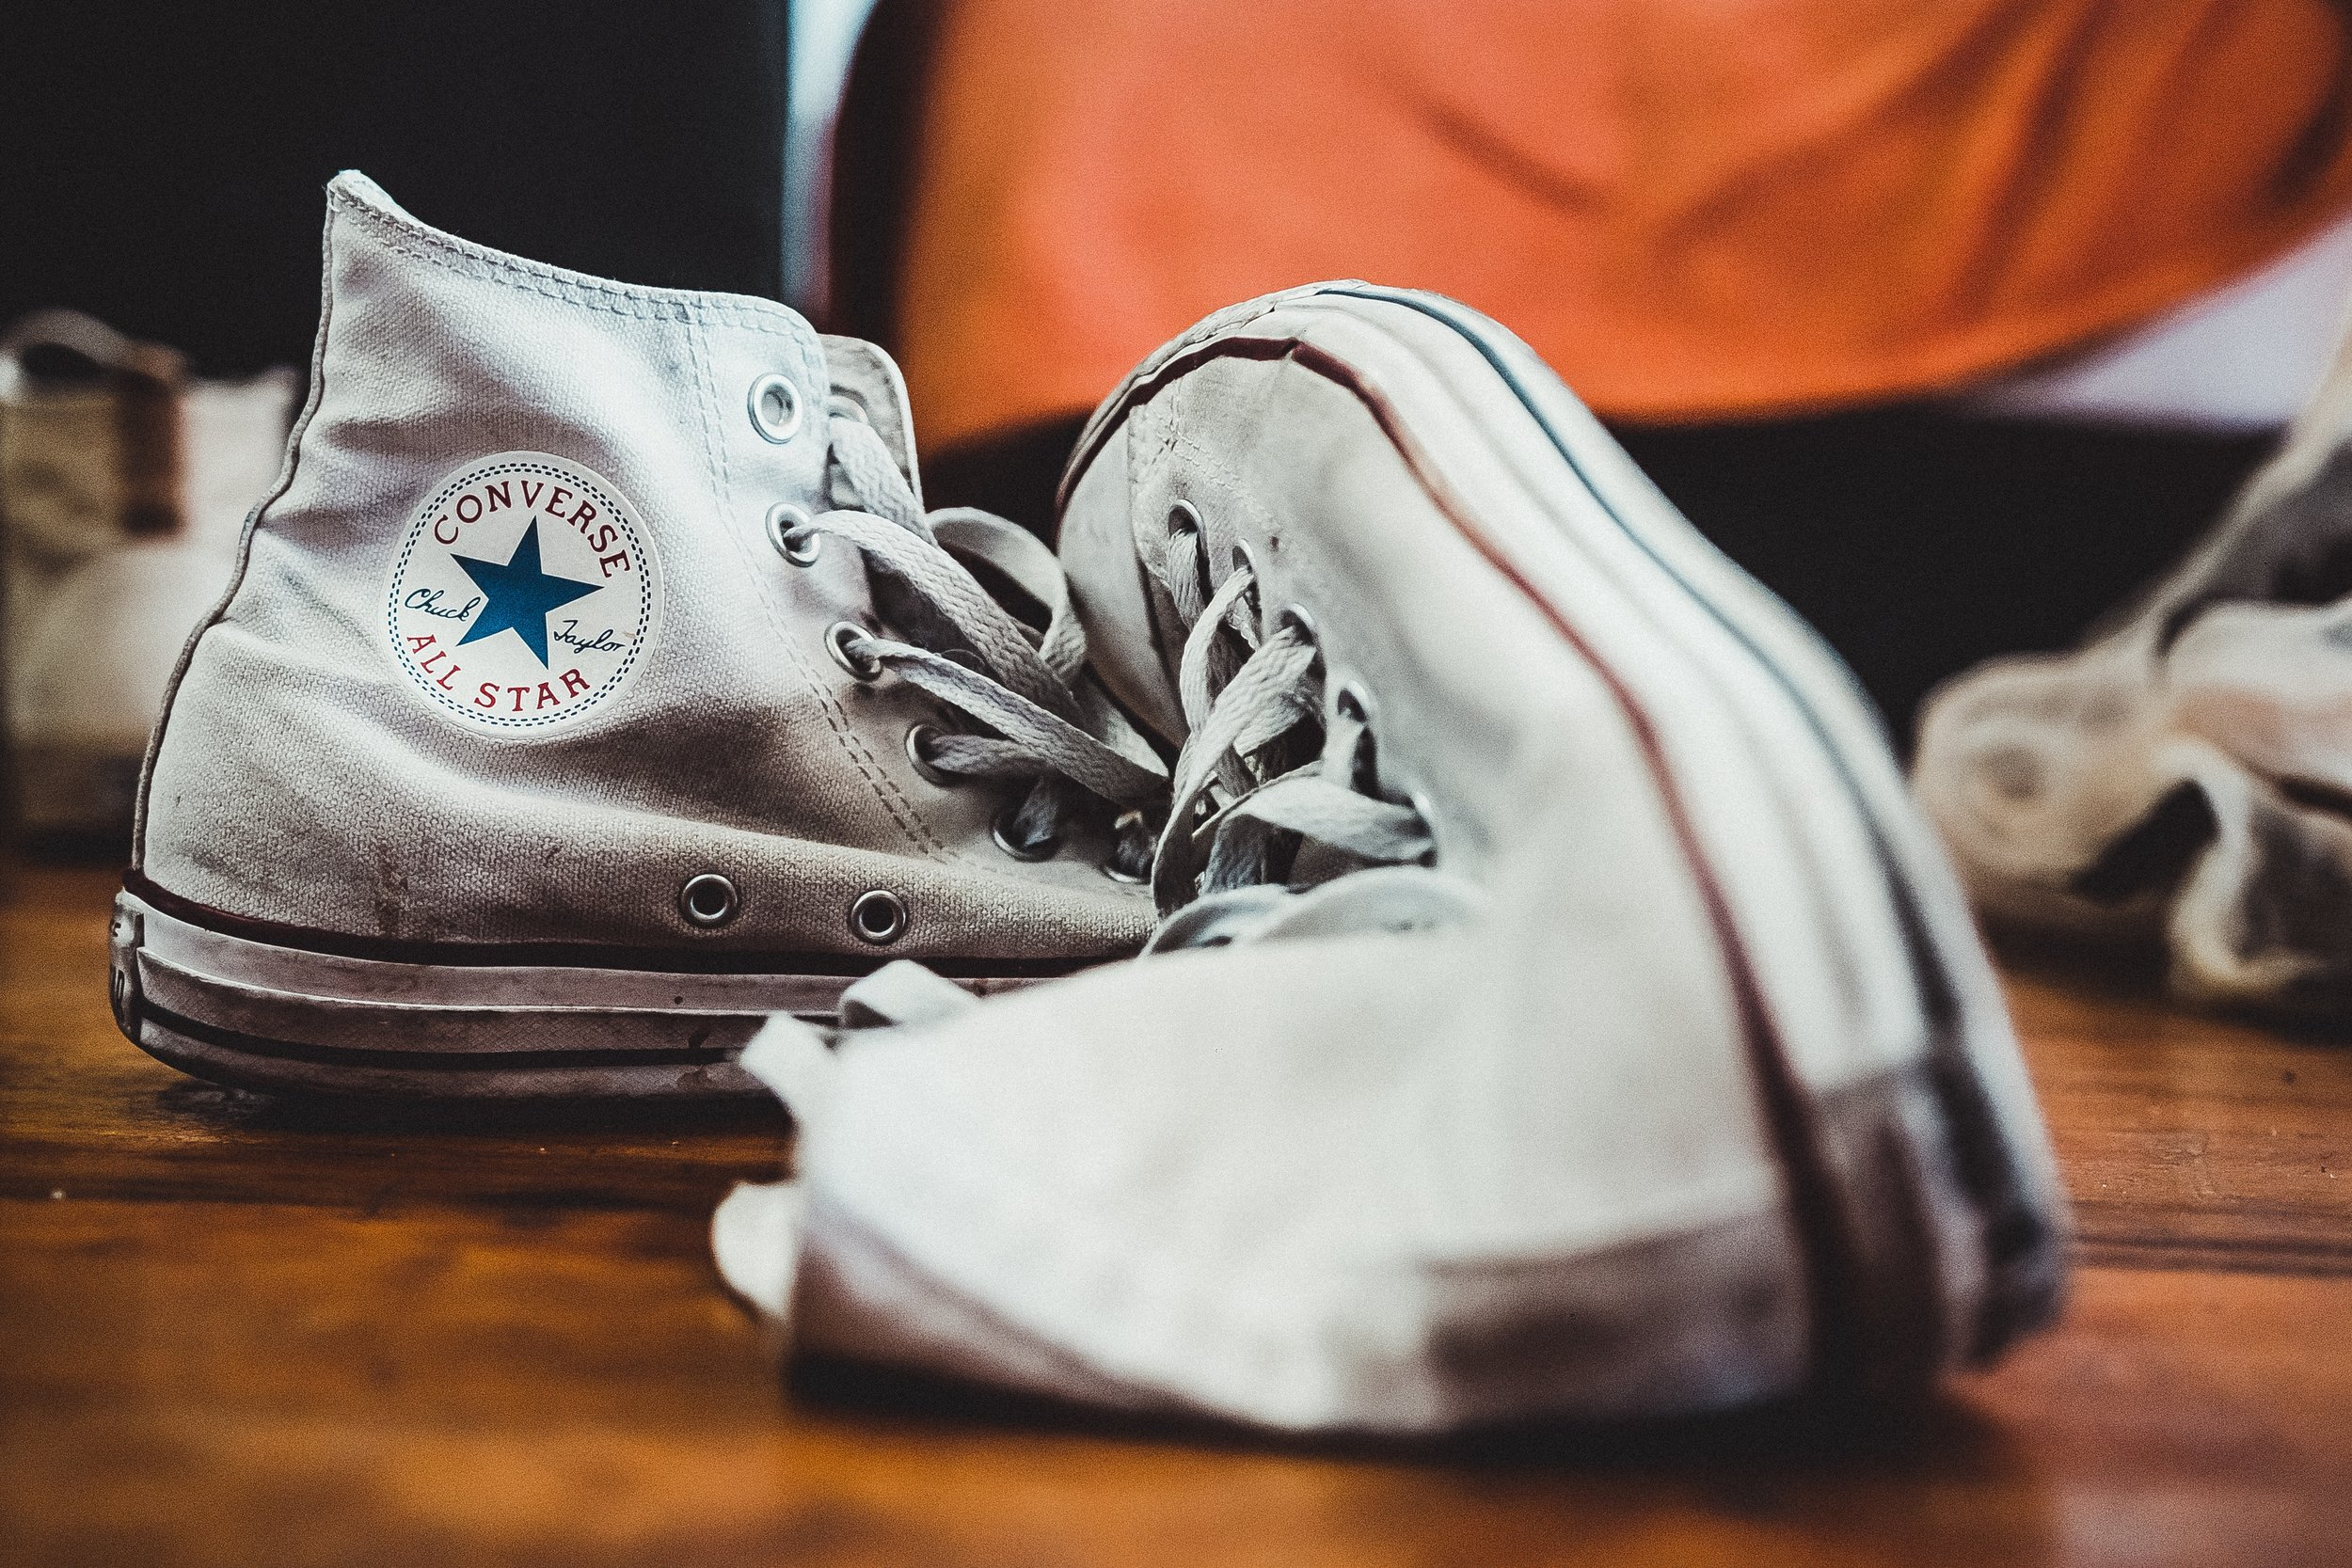 My shoes weren't actually Converse All Stars, but Nike. Photo by  Nqobile Vundla  on  Unsplash